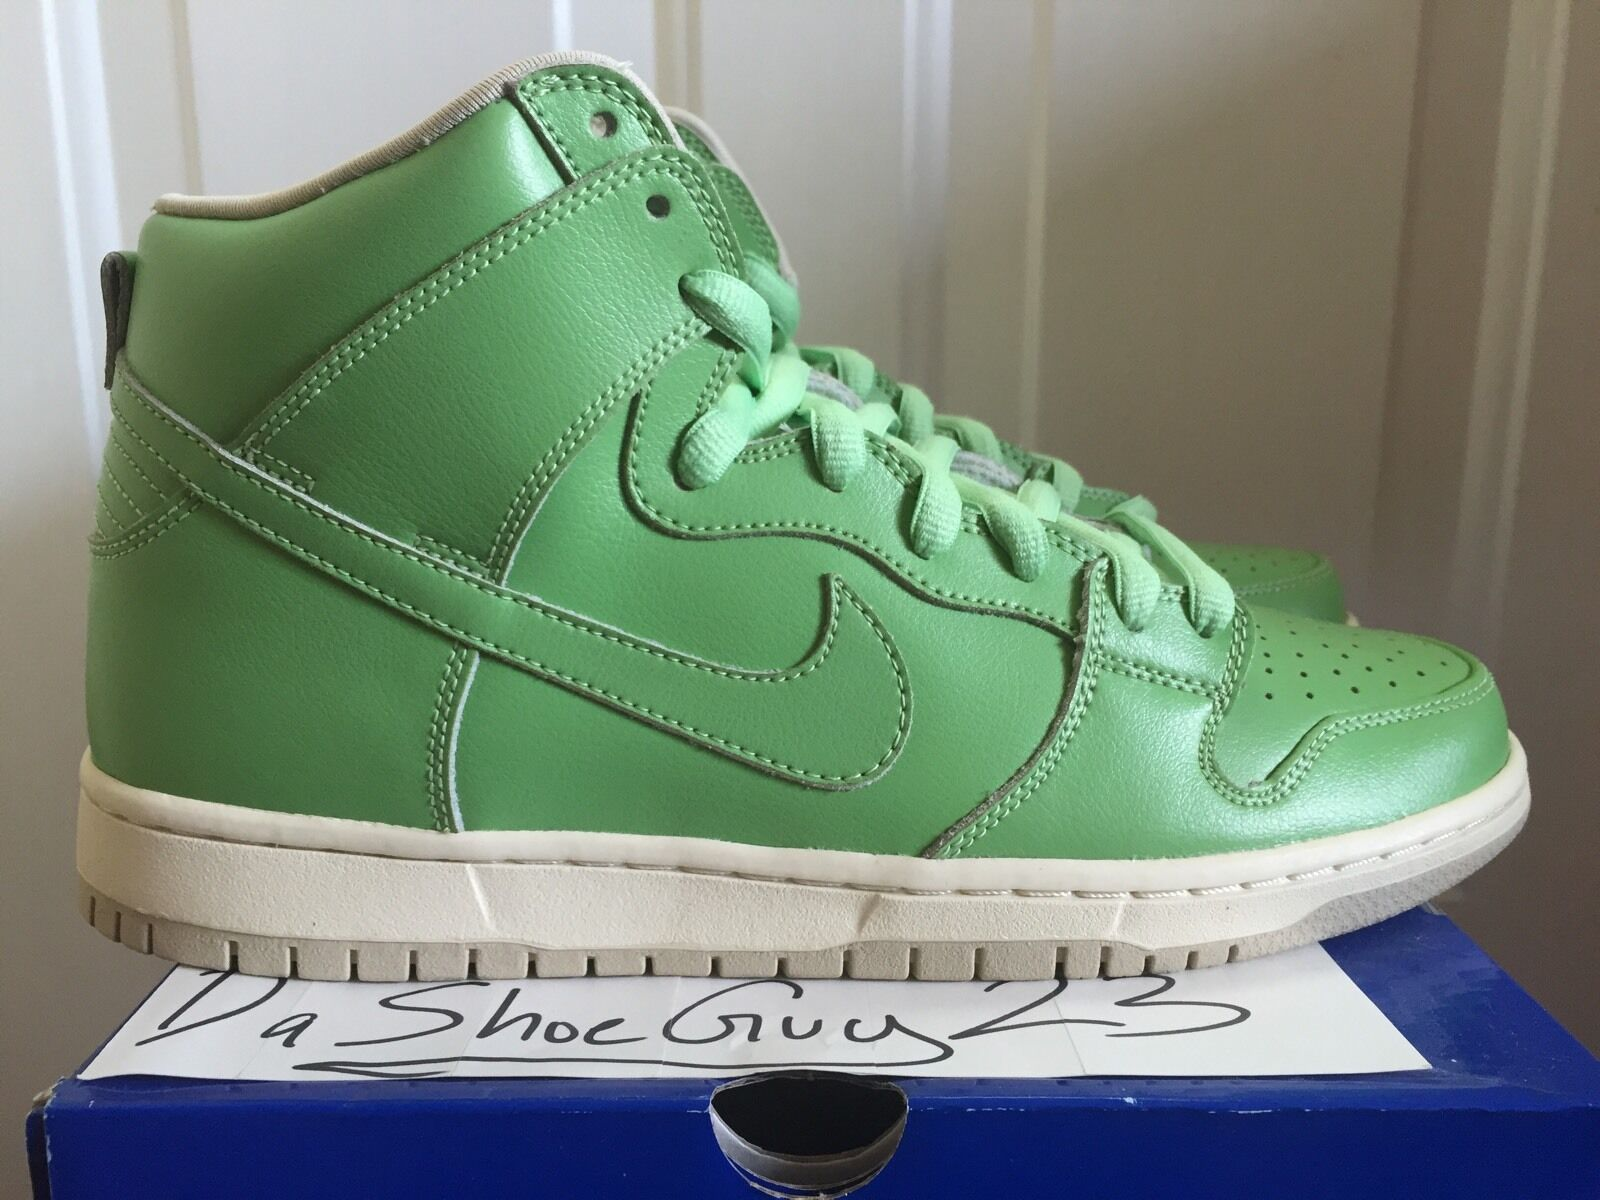 NIKE DUNK HIGH PREMIUM SB STATUE OF LIBERTY sz 9 313171 302 WTD SUPREME SPNY